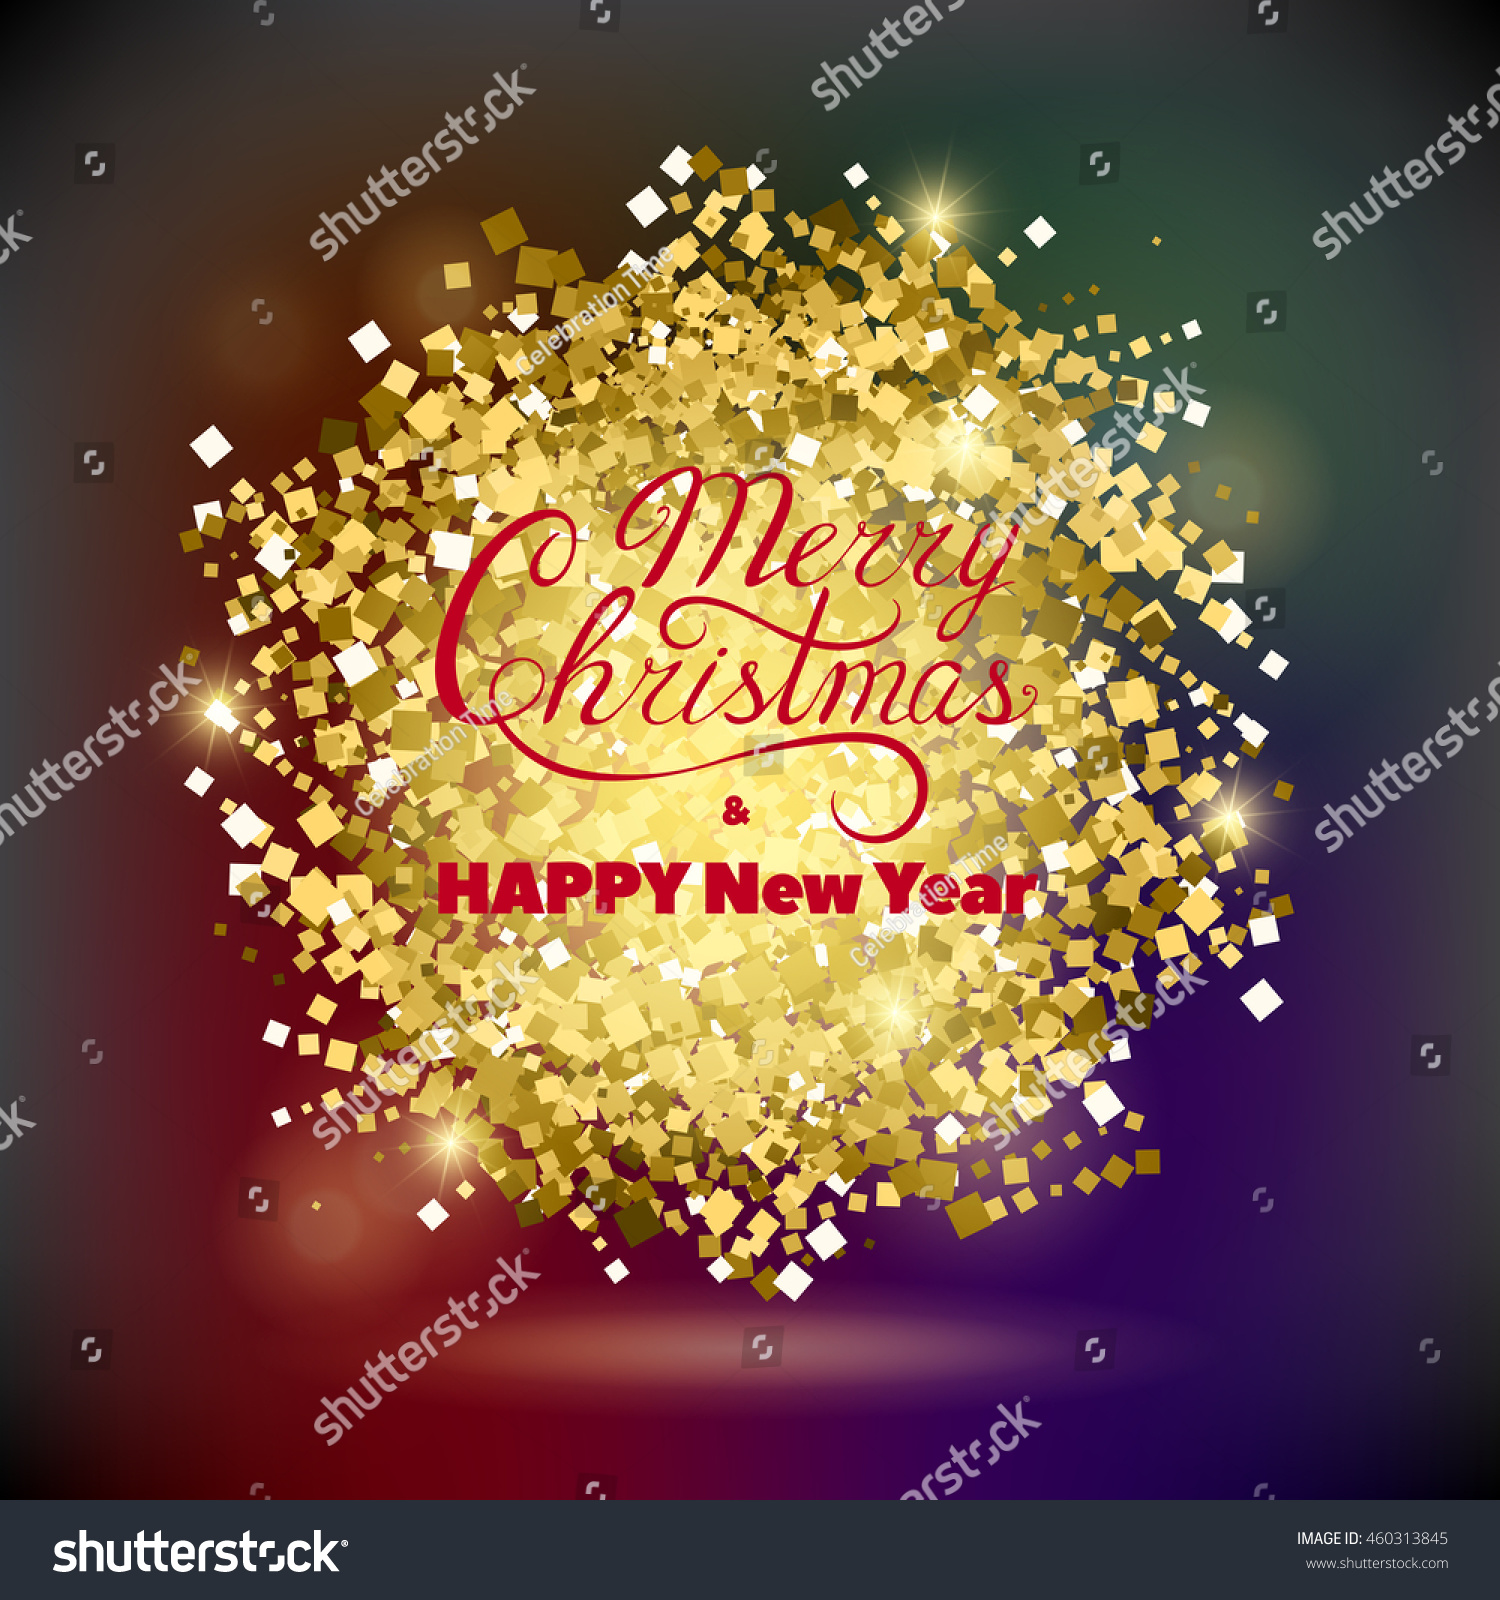 Christmas and happy new year greetings merry christmas and happy new year greetings kristyandbryce Gallery